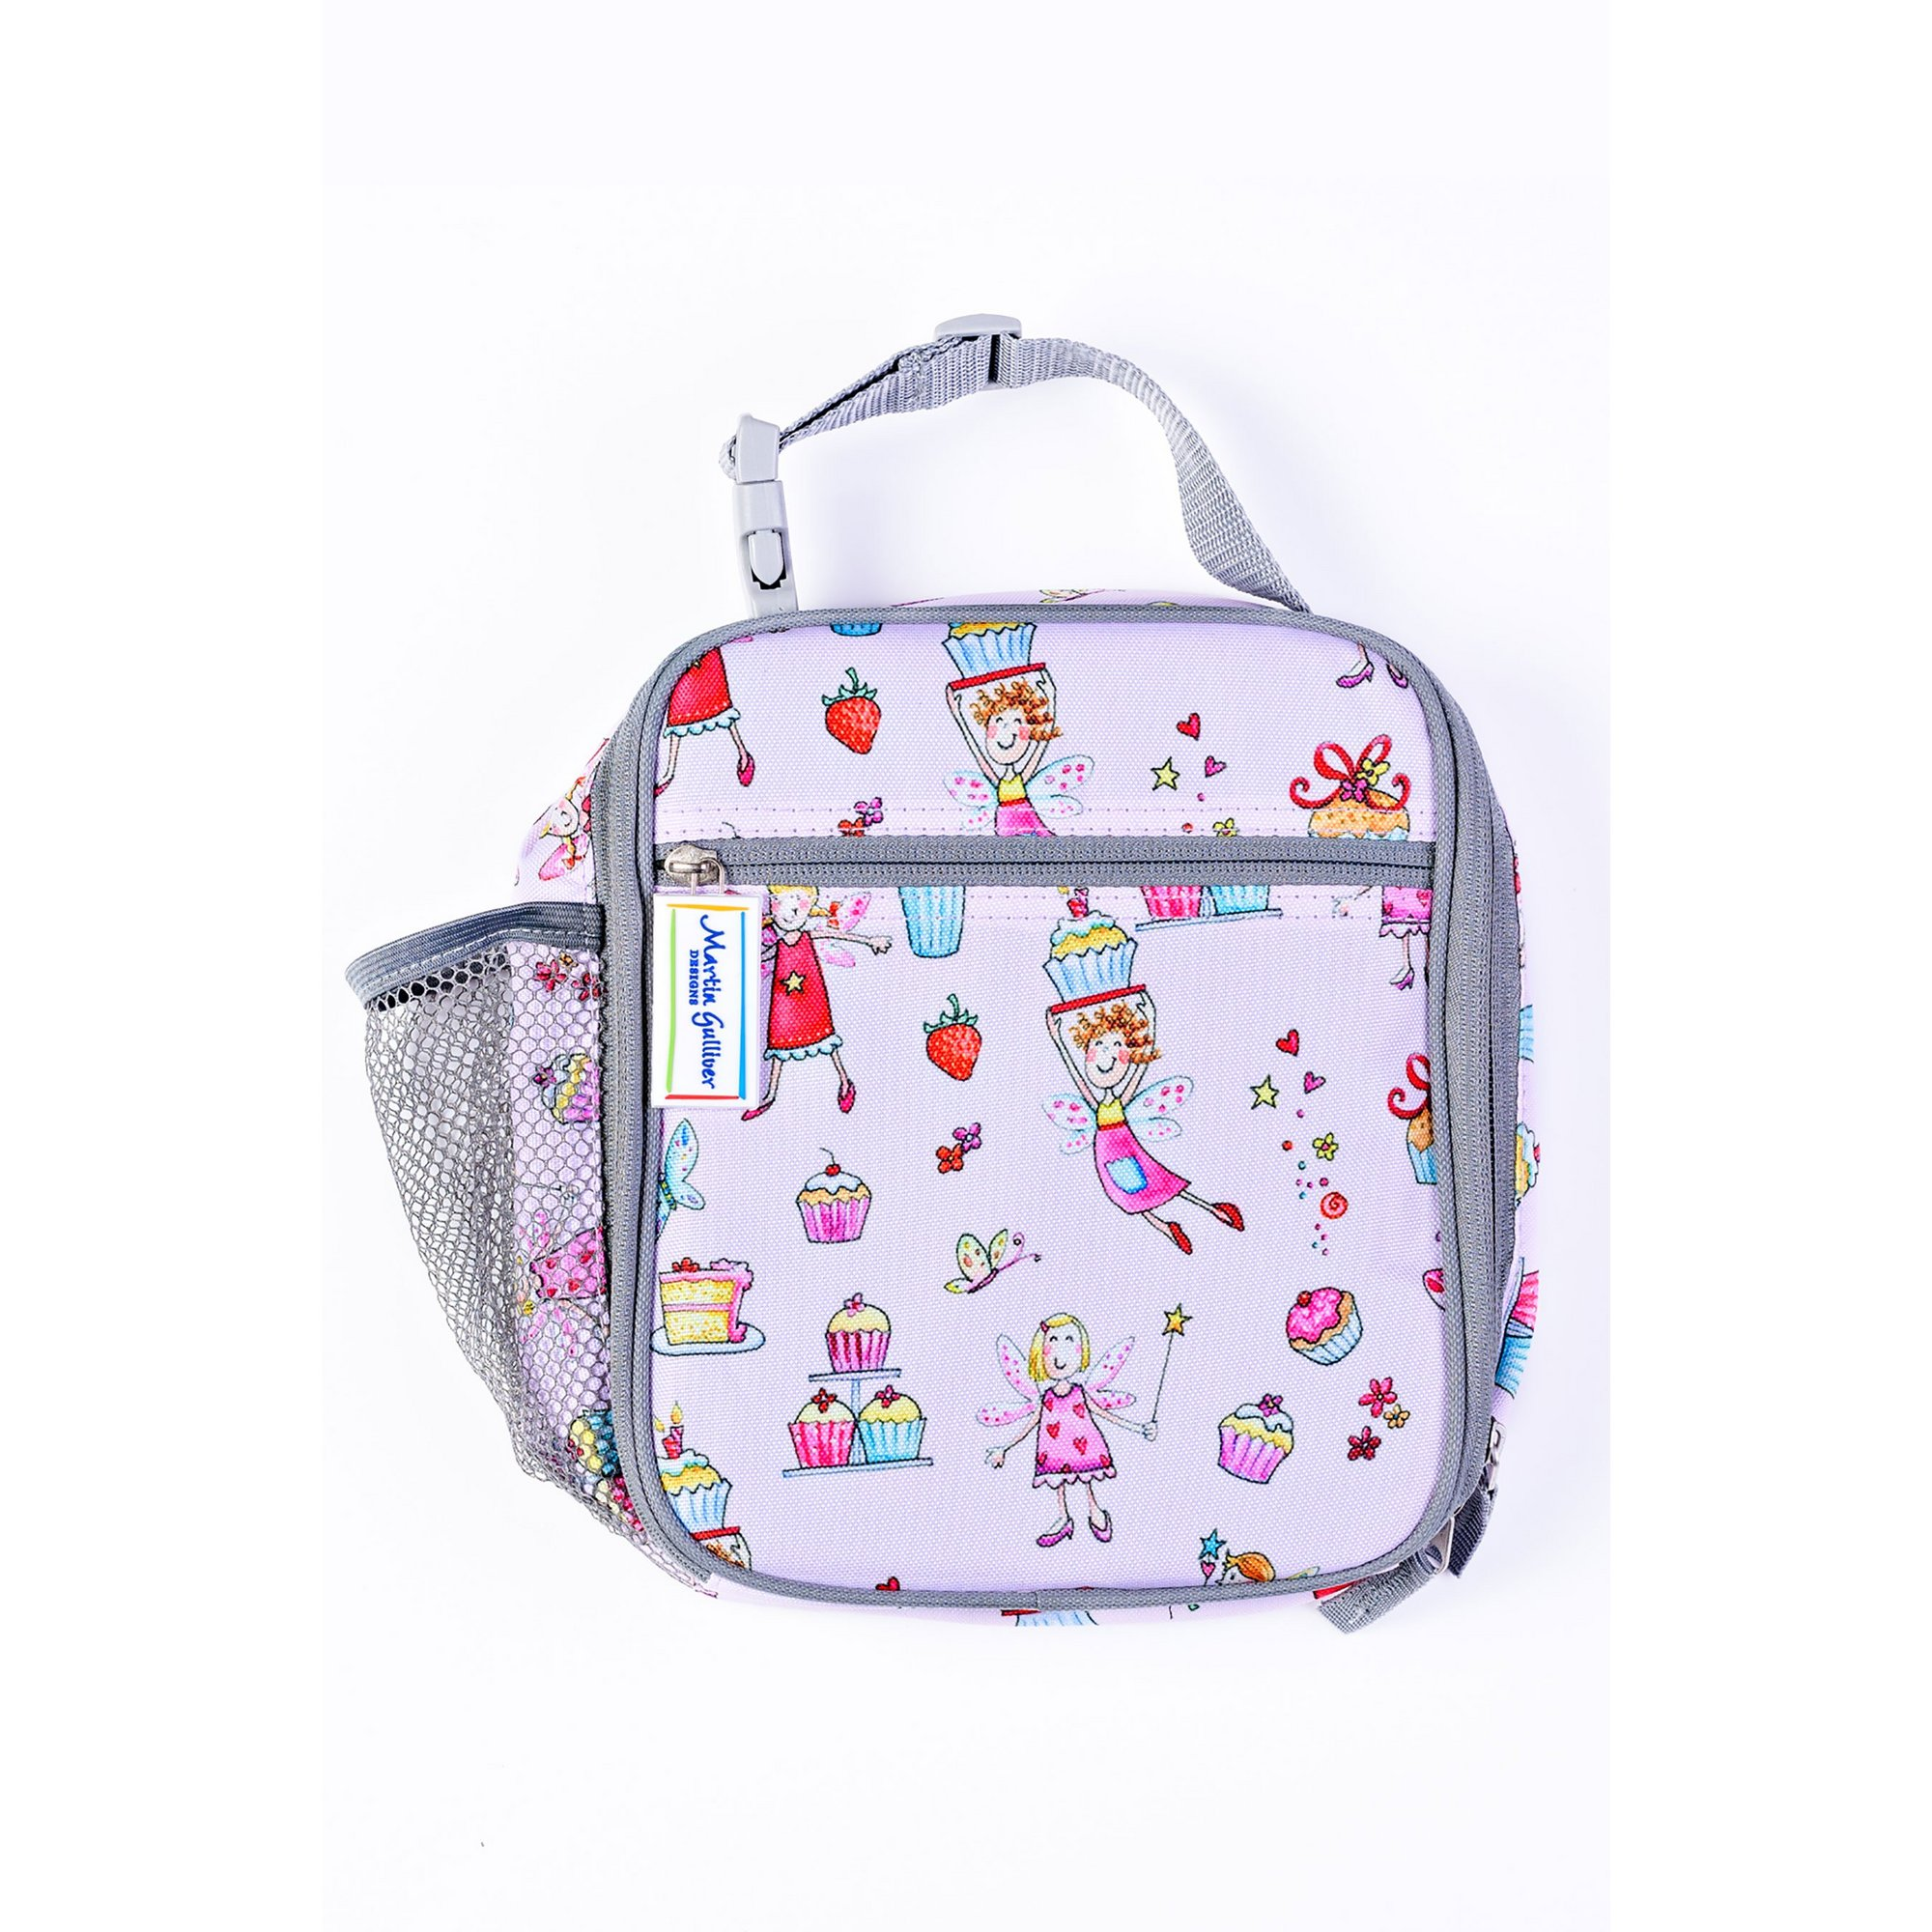 Image of Cup Cake Fairy Lunch Bag by Martin Gulliver